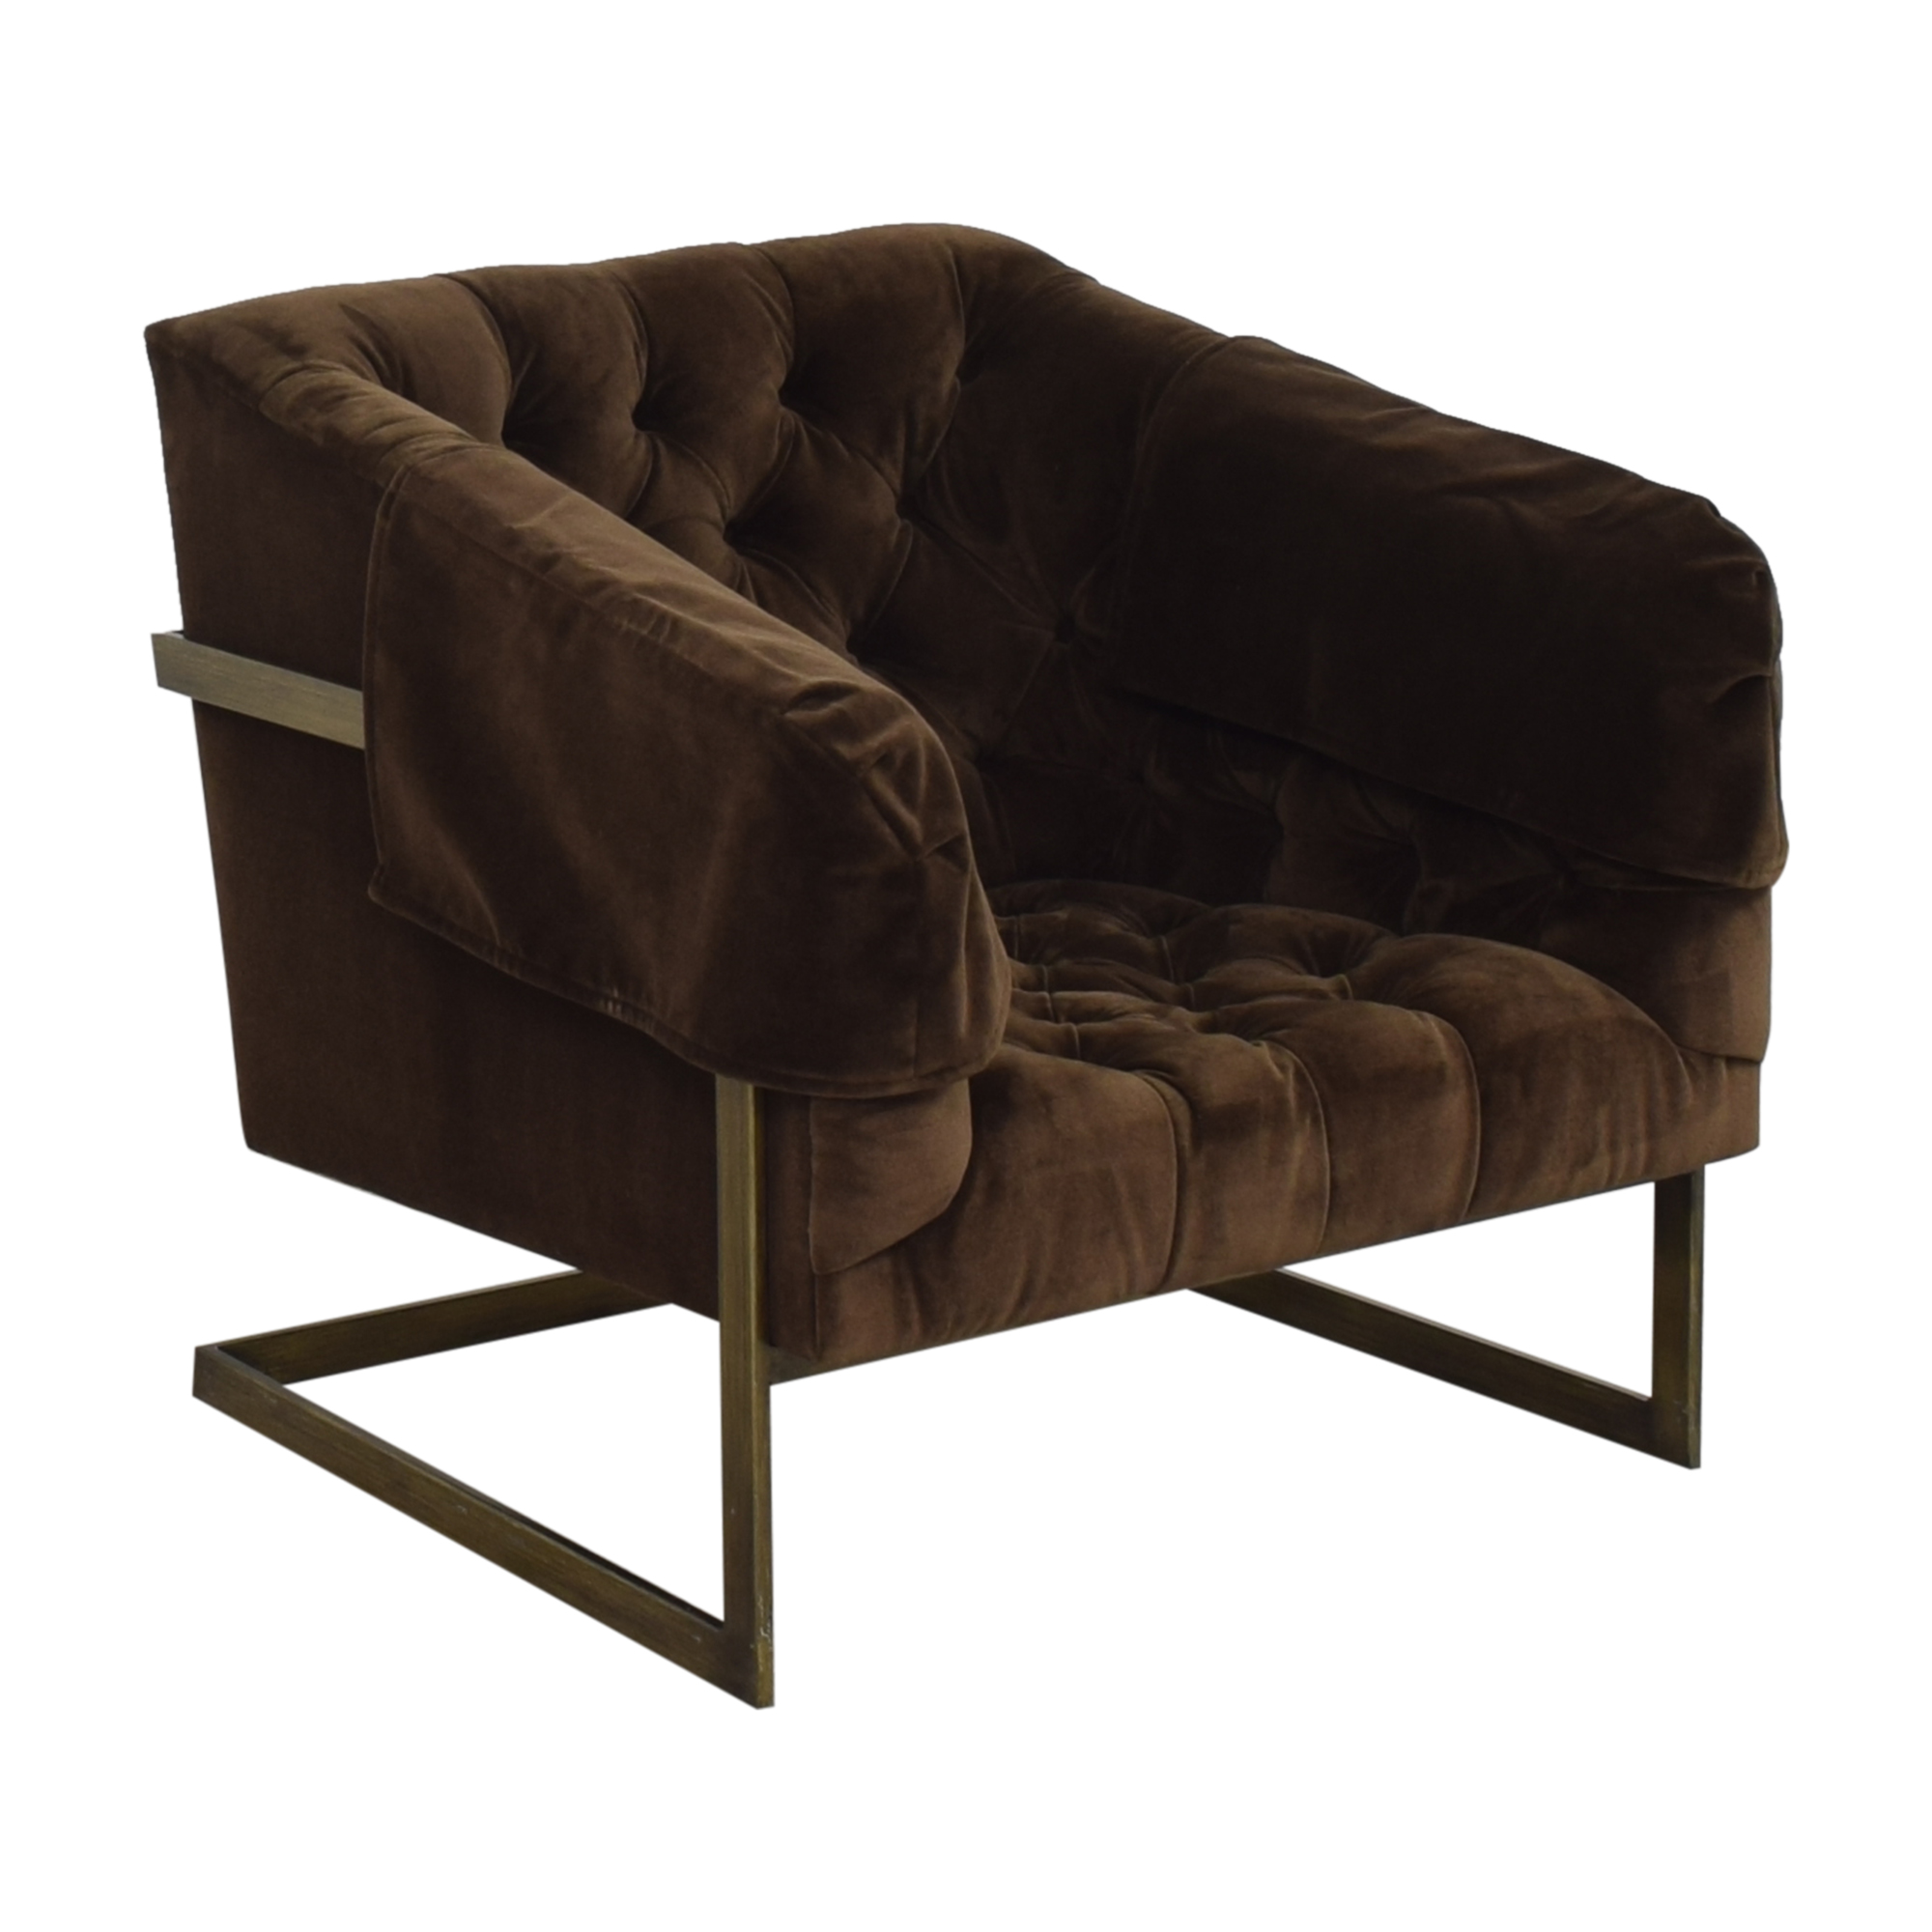 buy Safavieh Tufted Accent Chair Safavieh Chairs